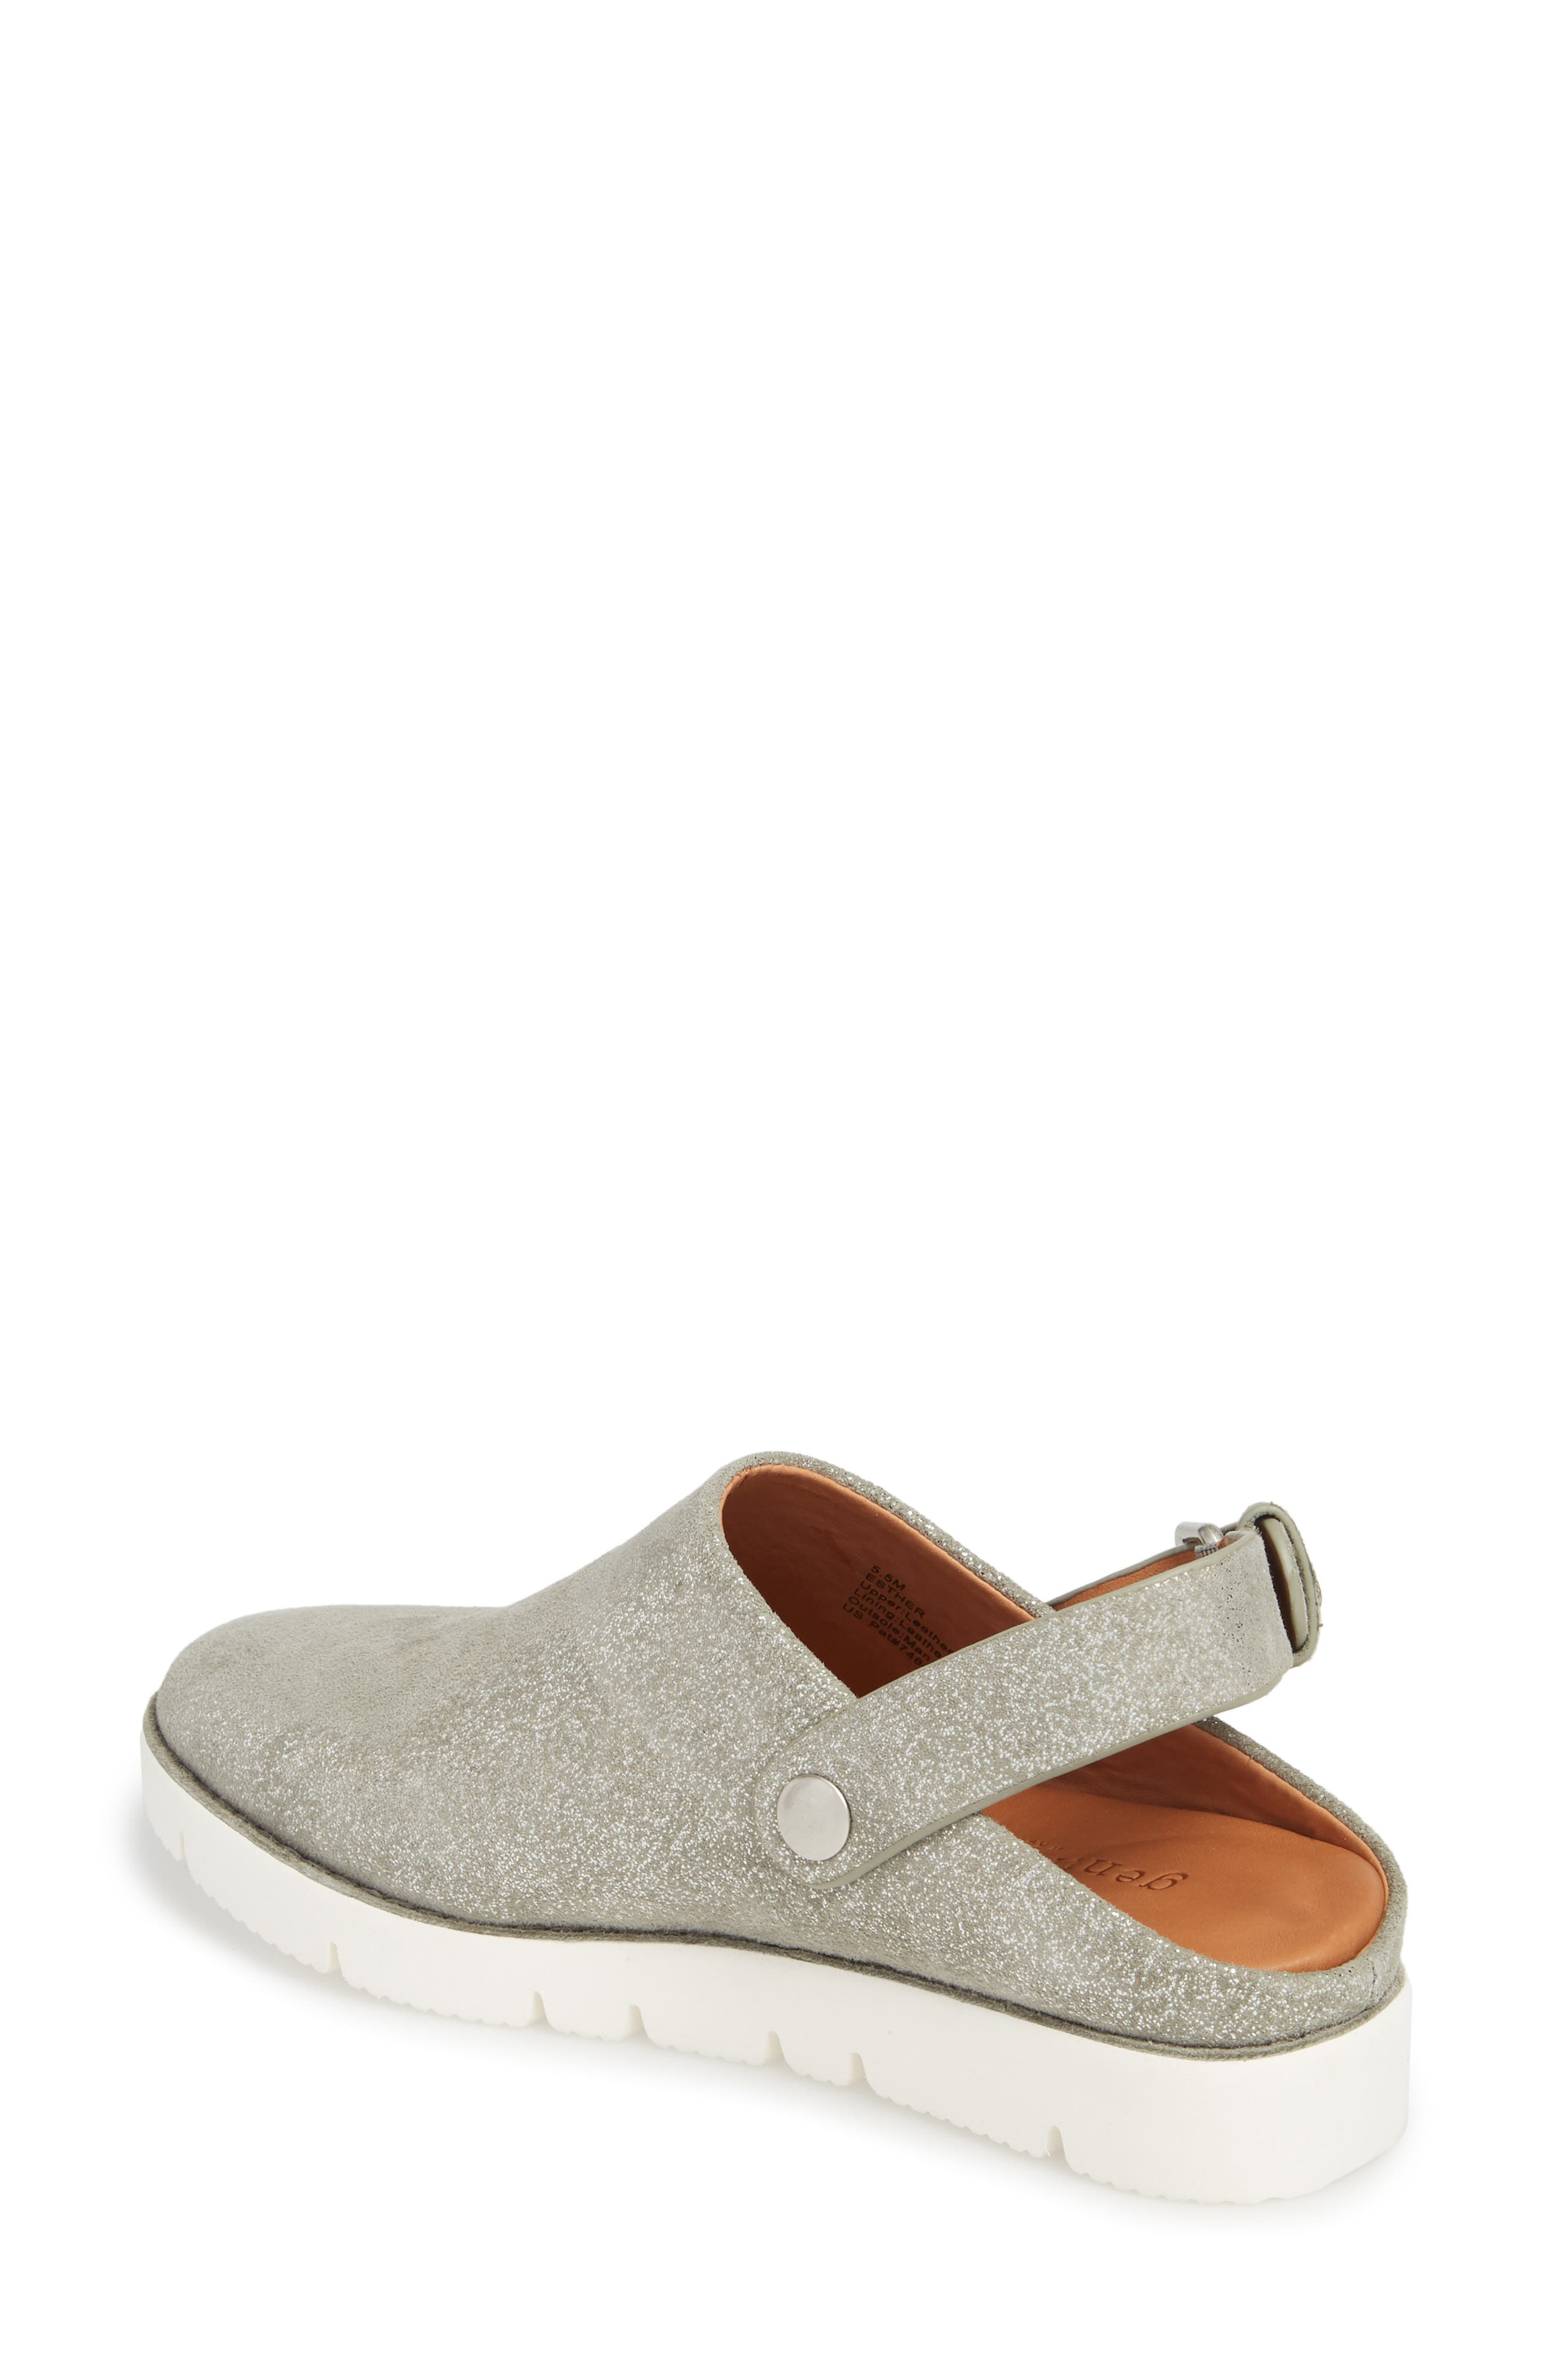 GENTLE SOULS BY KENNETH COLE, Esther Convertible Wedge, Alternate thumbnail 2, color, LIGHT PEWTER METALLIC LEATHER